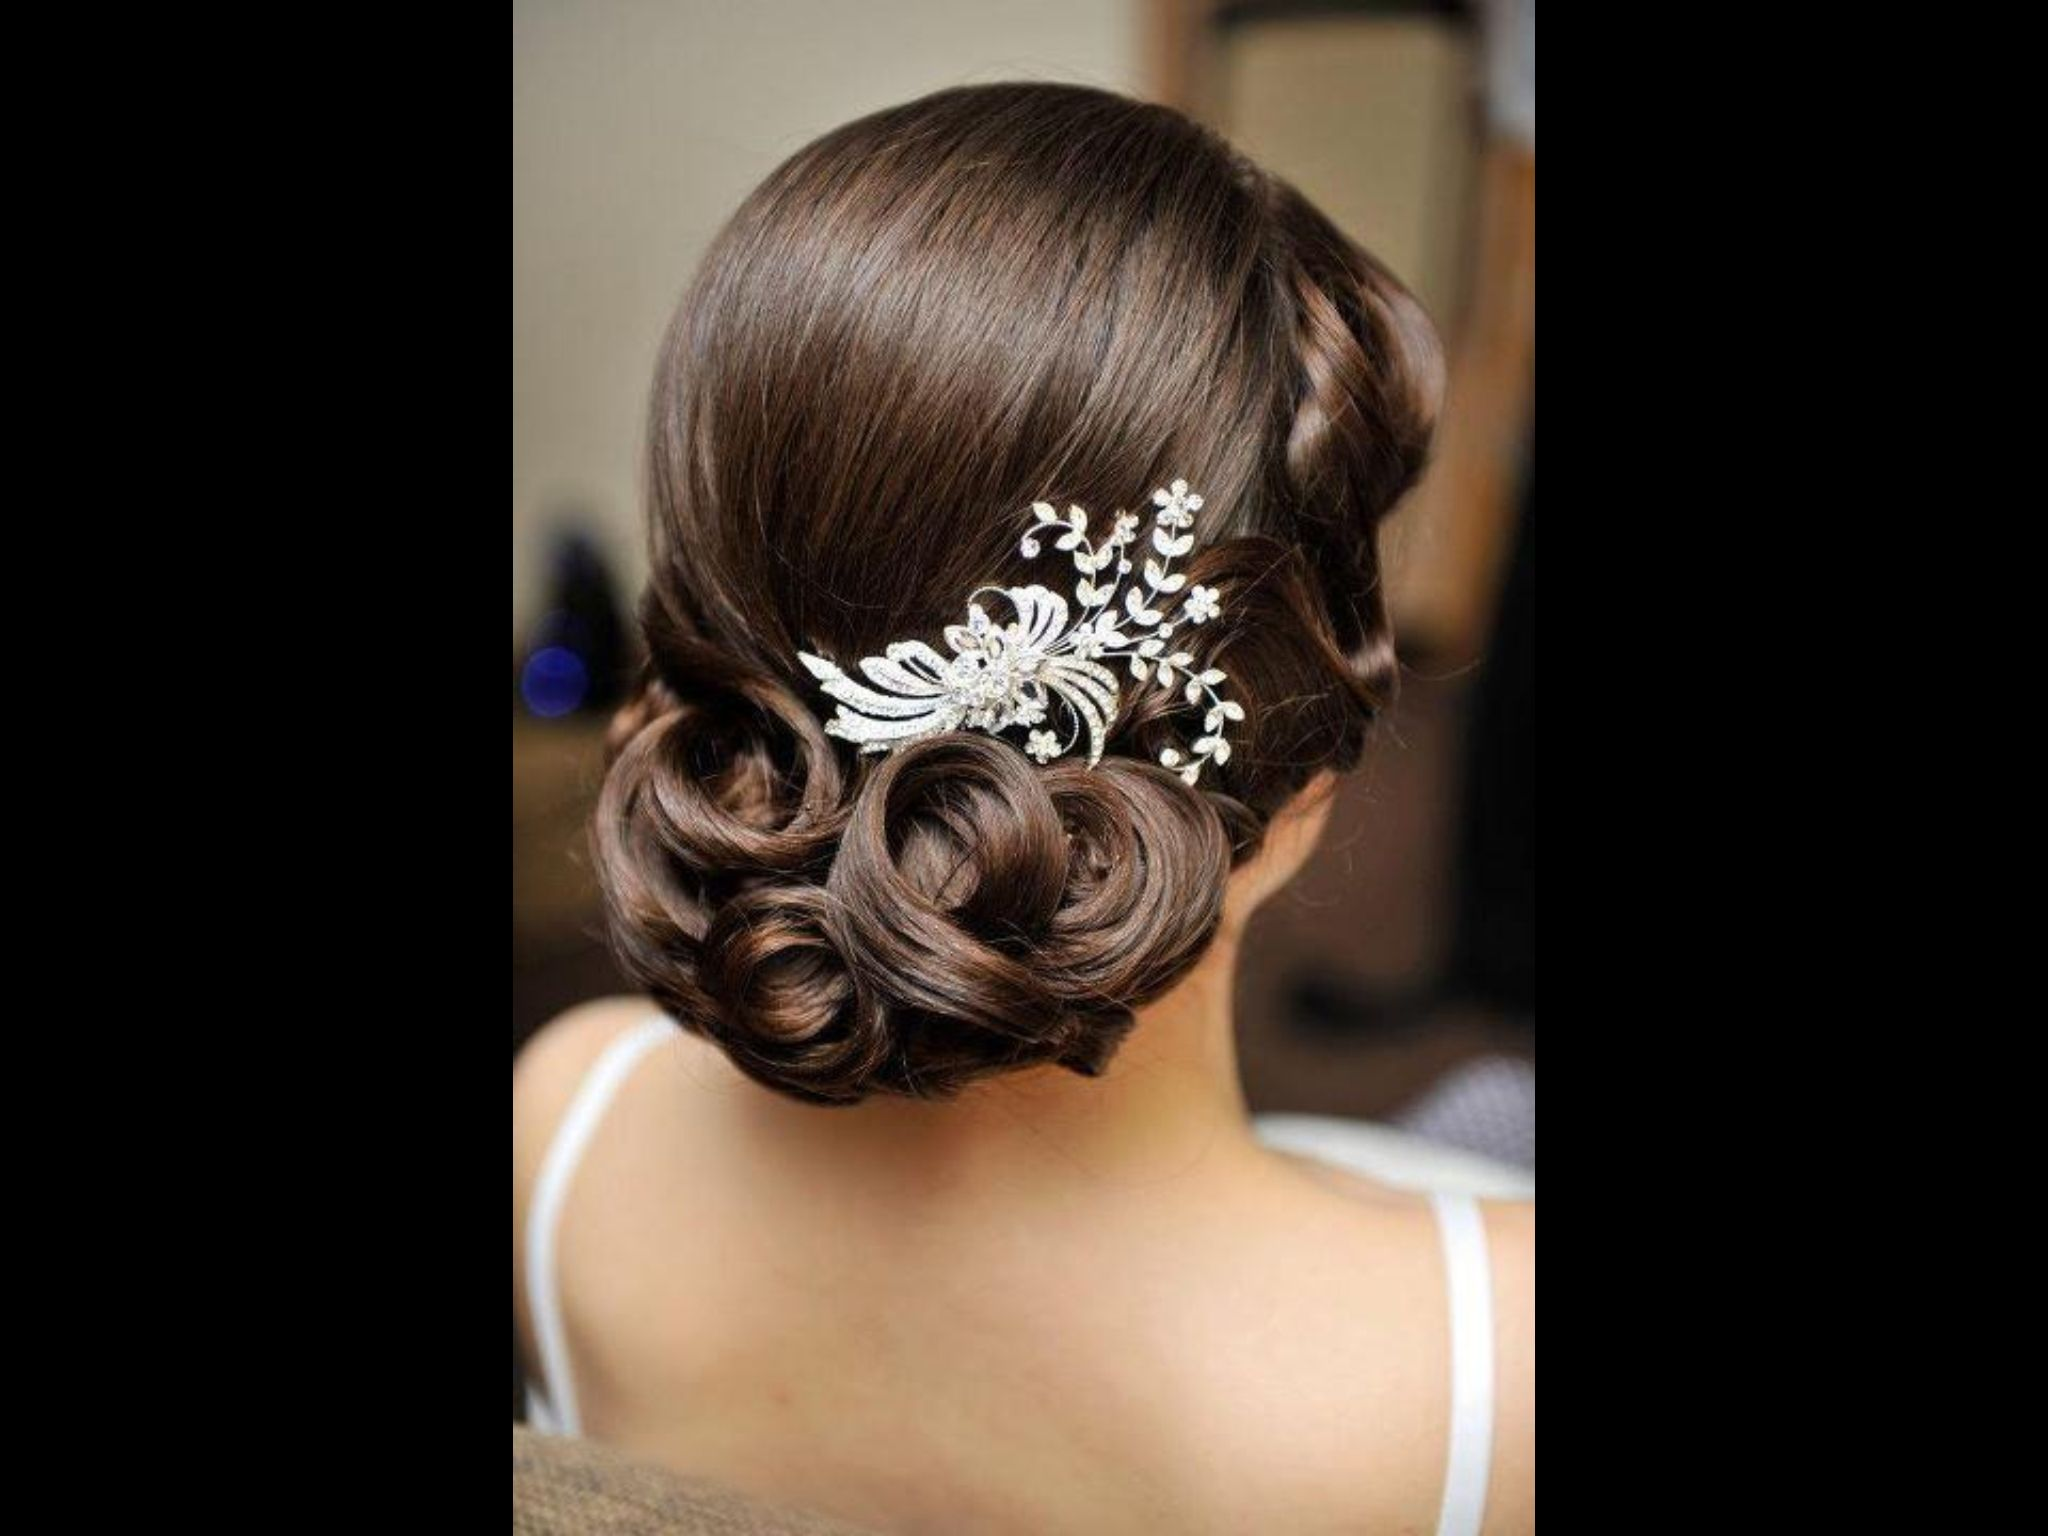 25 Best Ideas About Long Wedding Hairstyles On Pinterest: Best 25+ Finger Waves Wedding Ideas On Pinterest